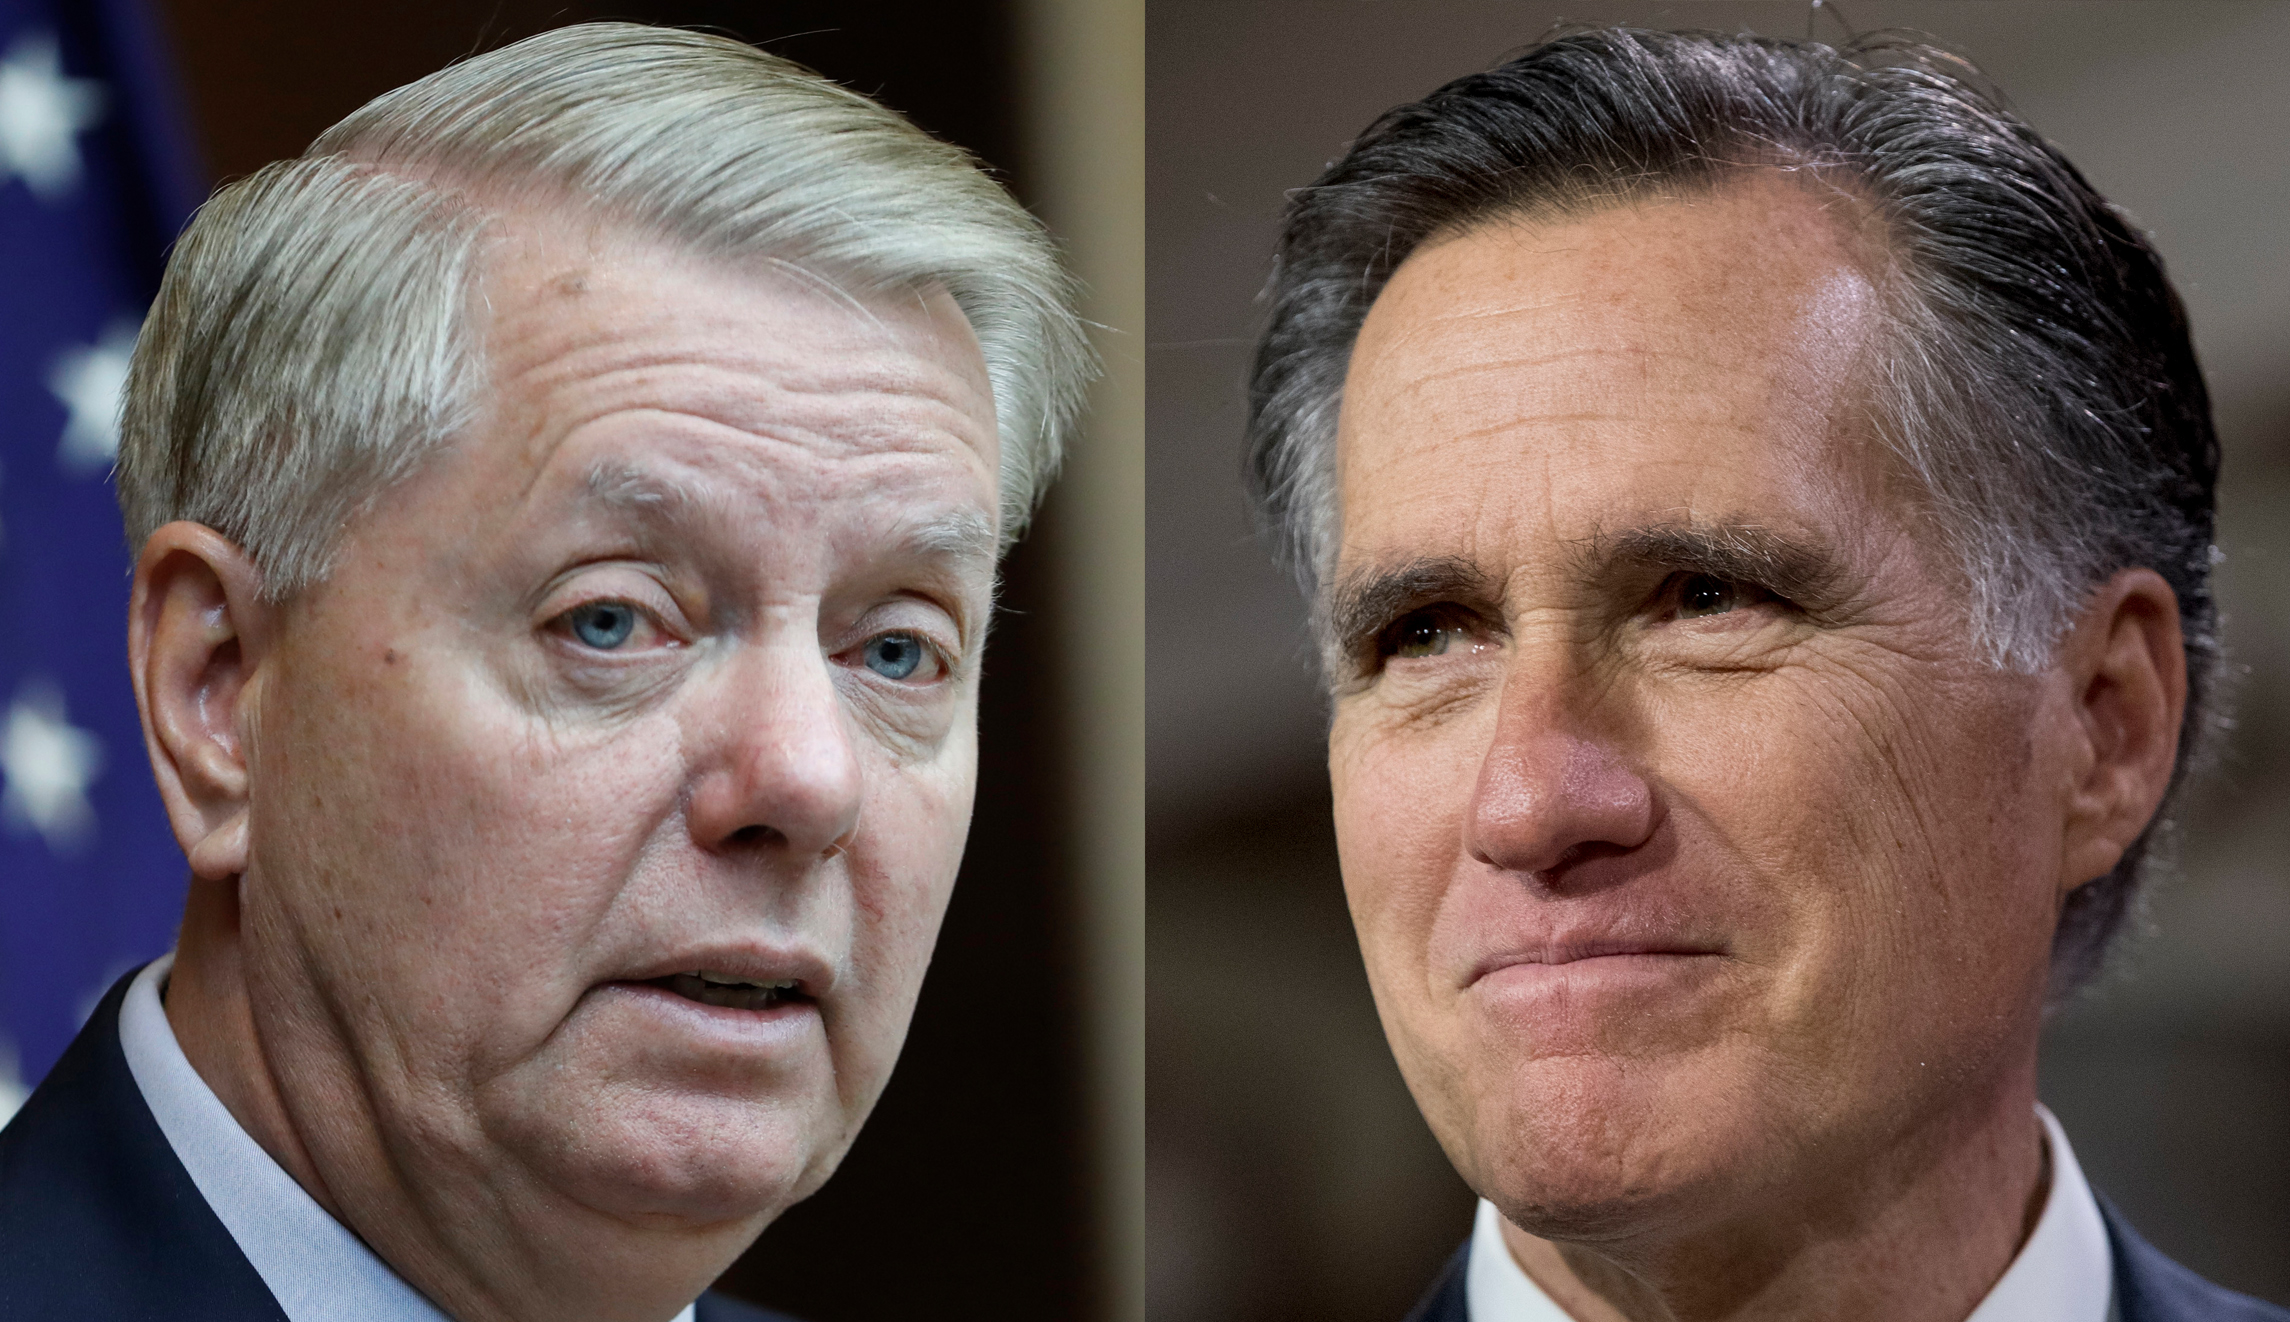 washingtonexaminer.com - Romney and Graham leave the door open to voting to remove Trump if impeachment passes